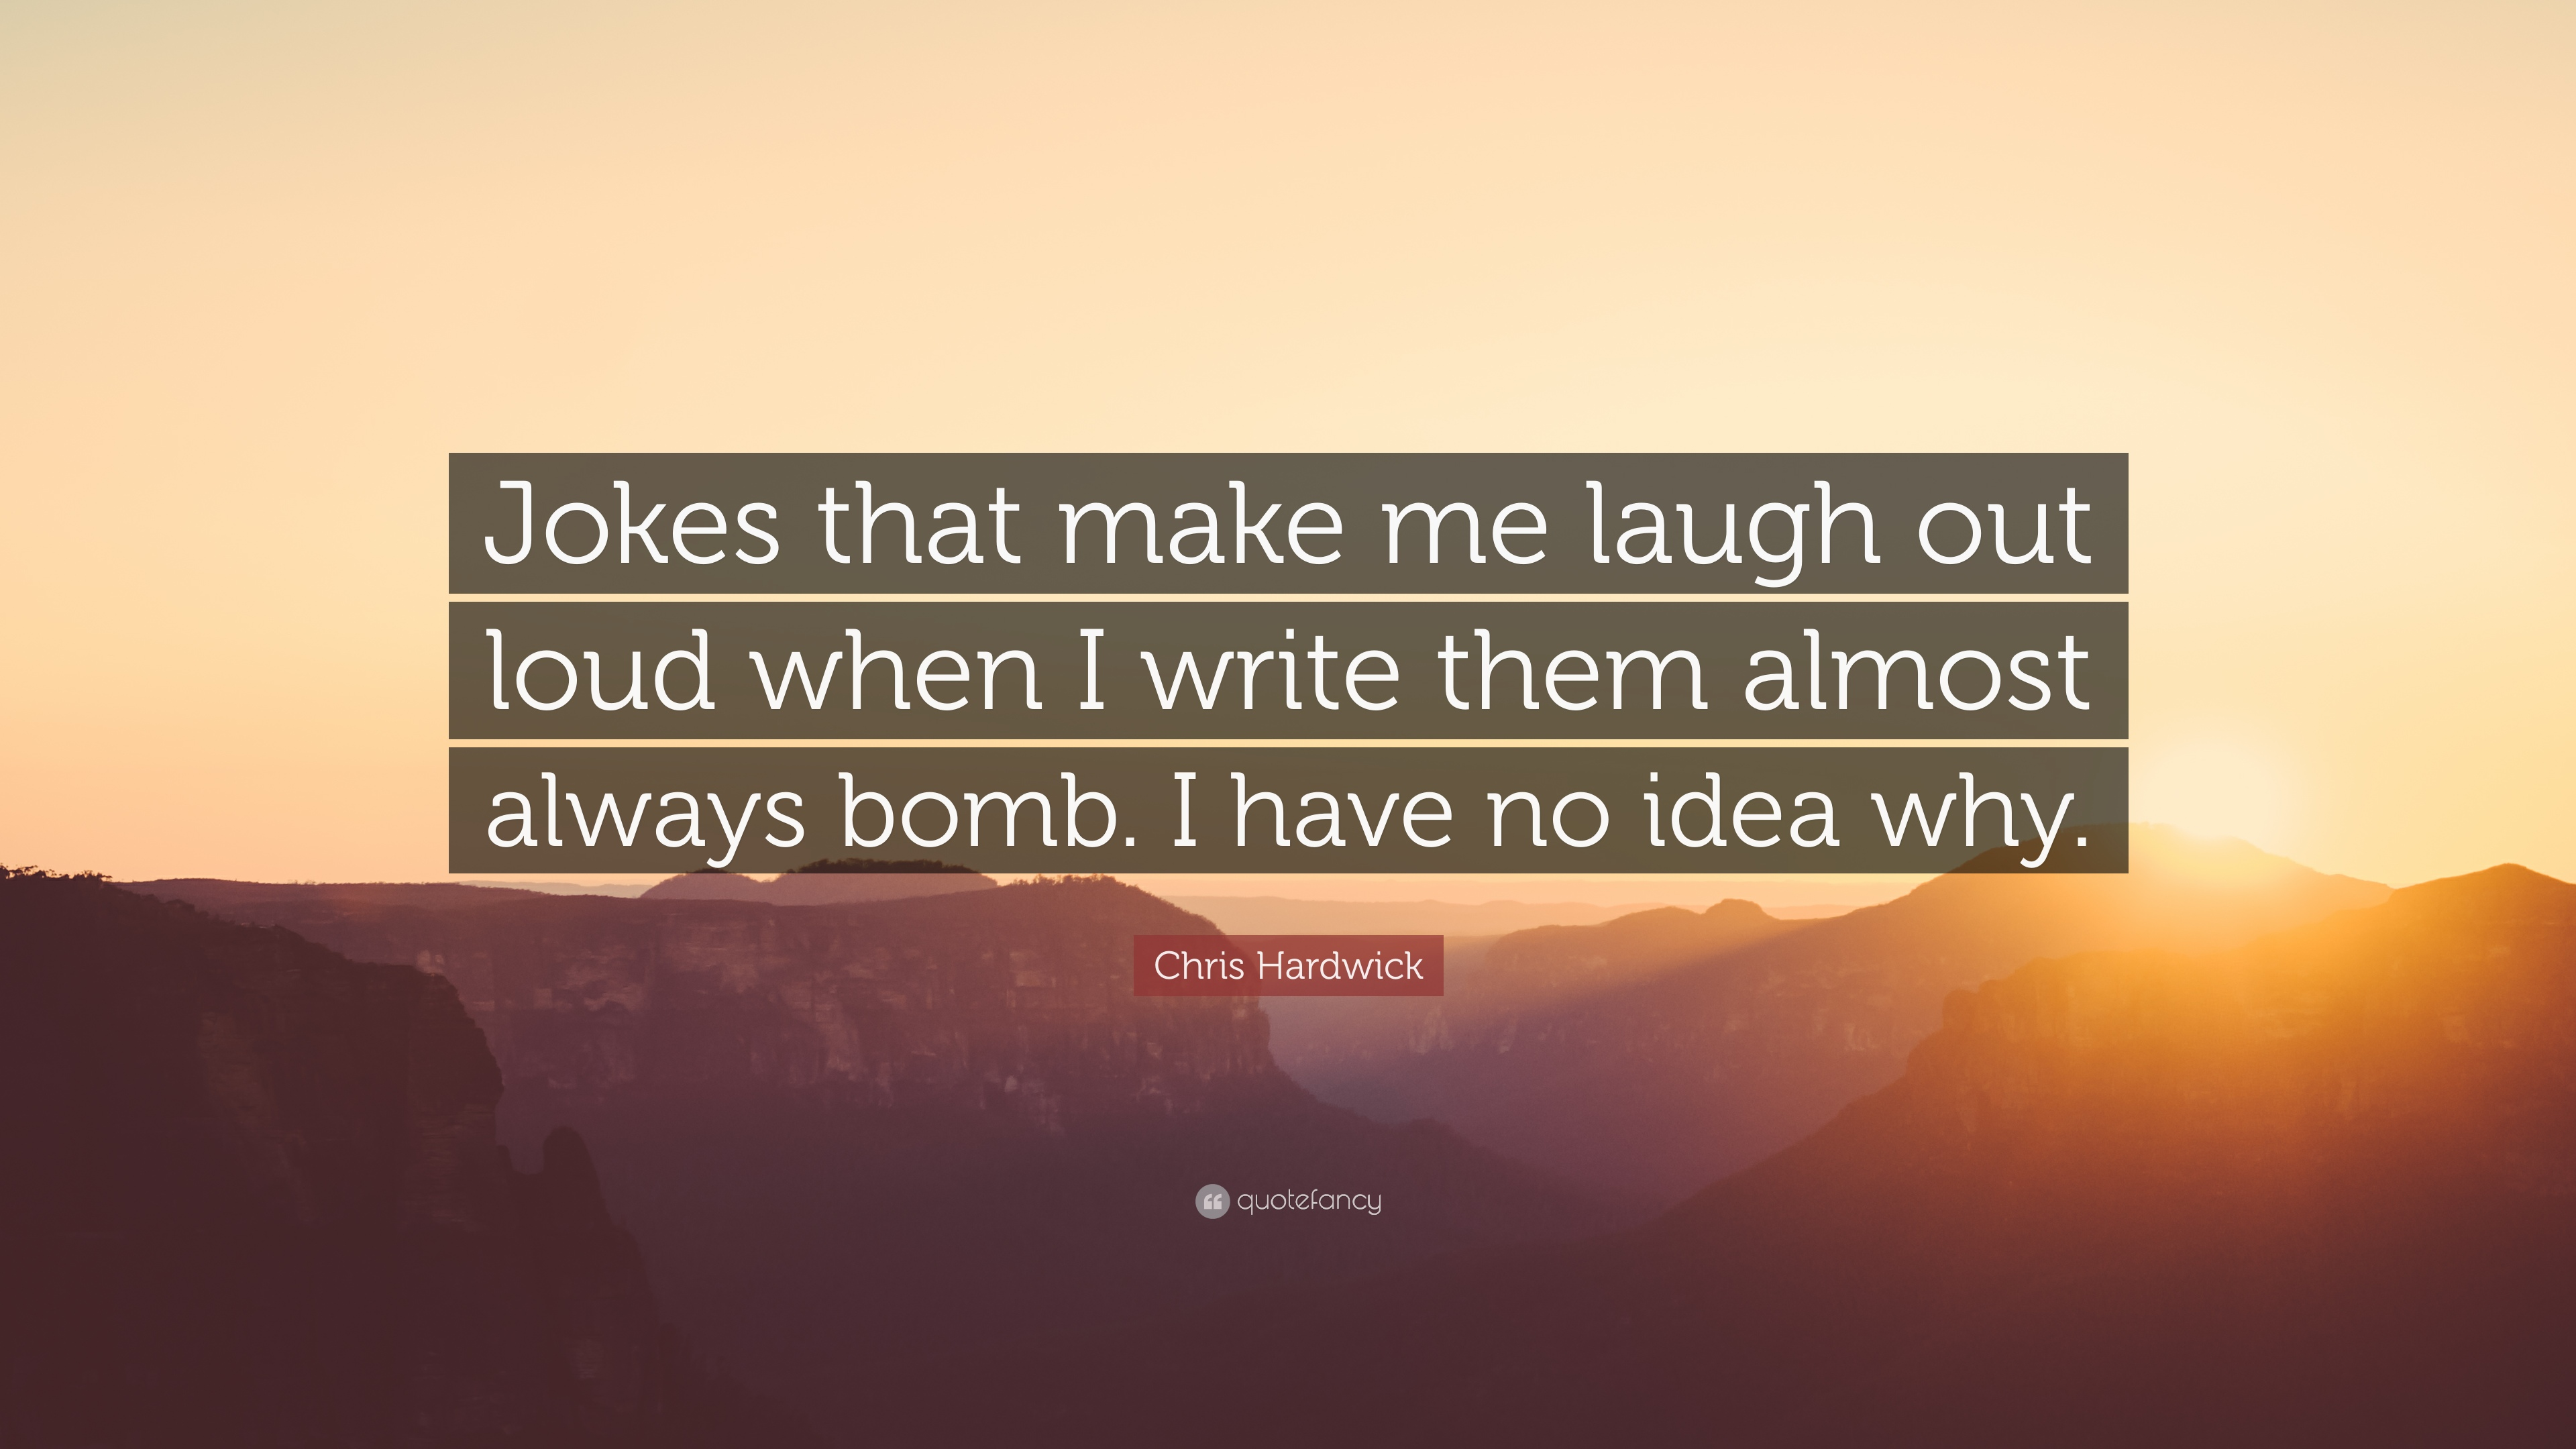 Chris Hardwick Quote Jokes That Make Me Laugh Out Loud When I Write Them